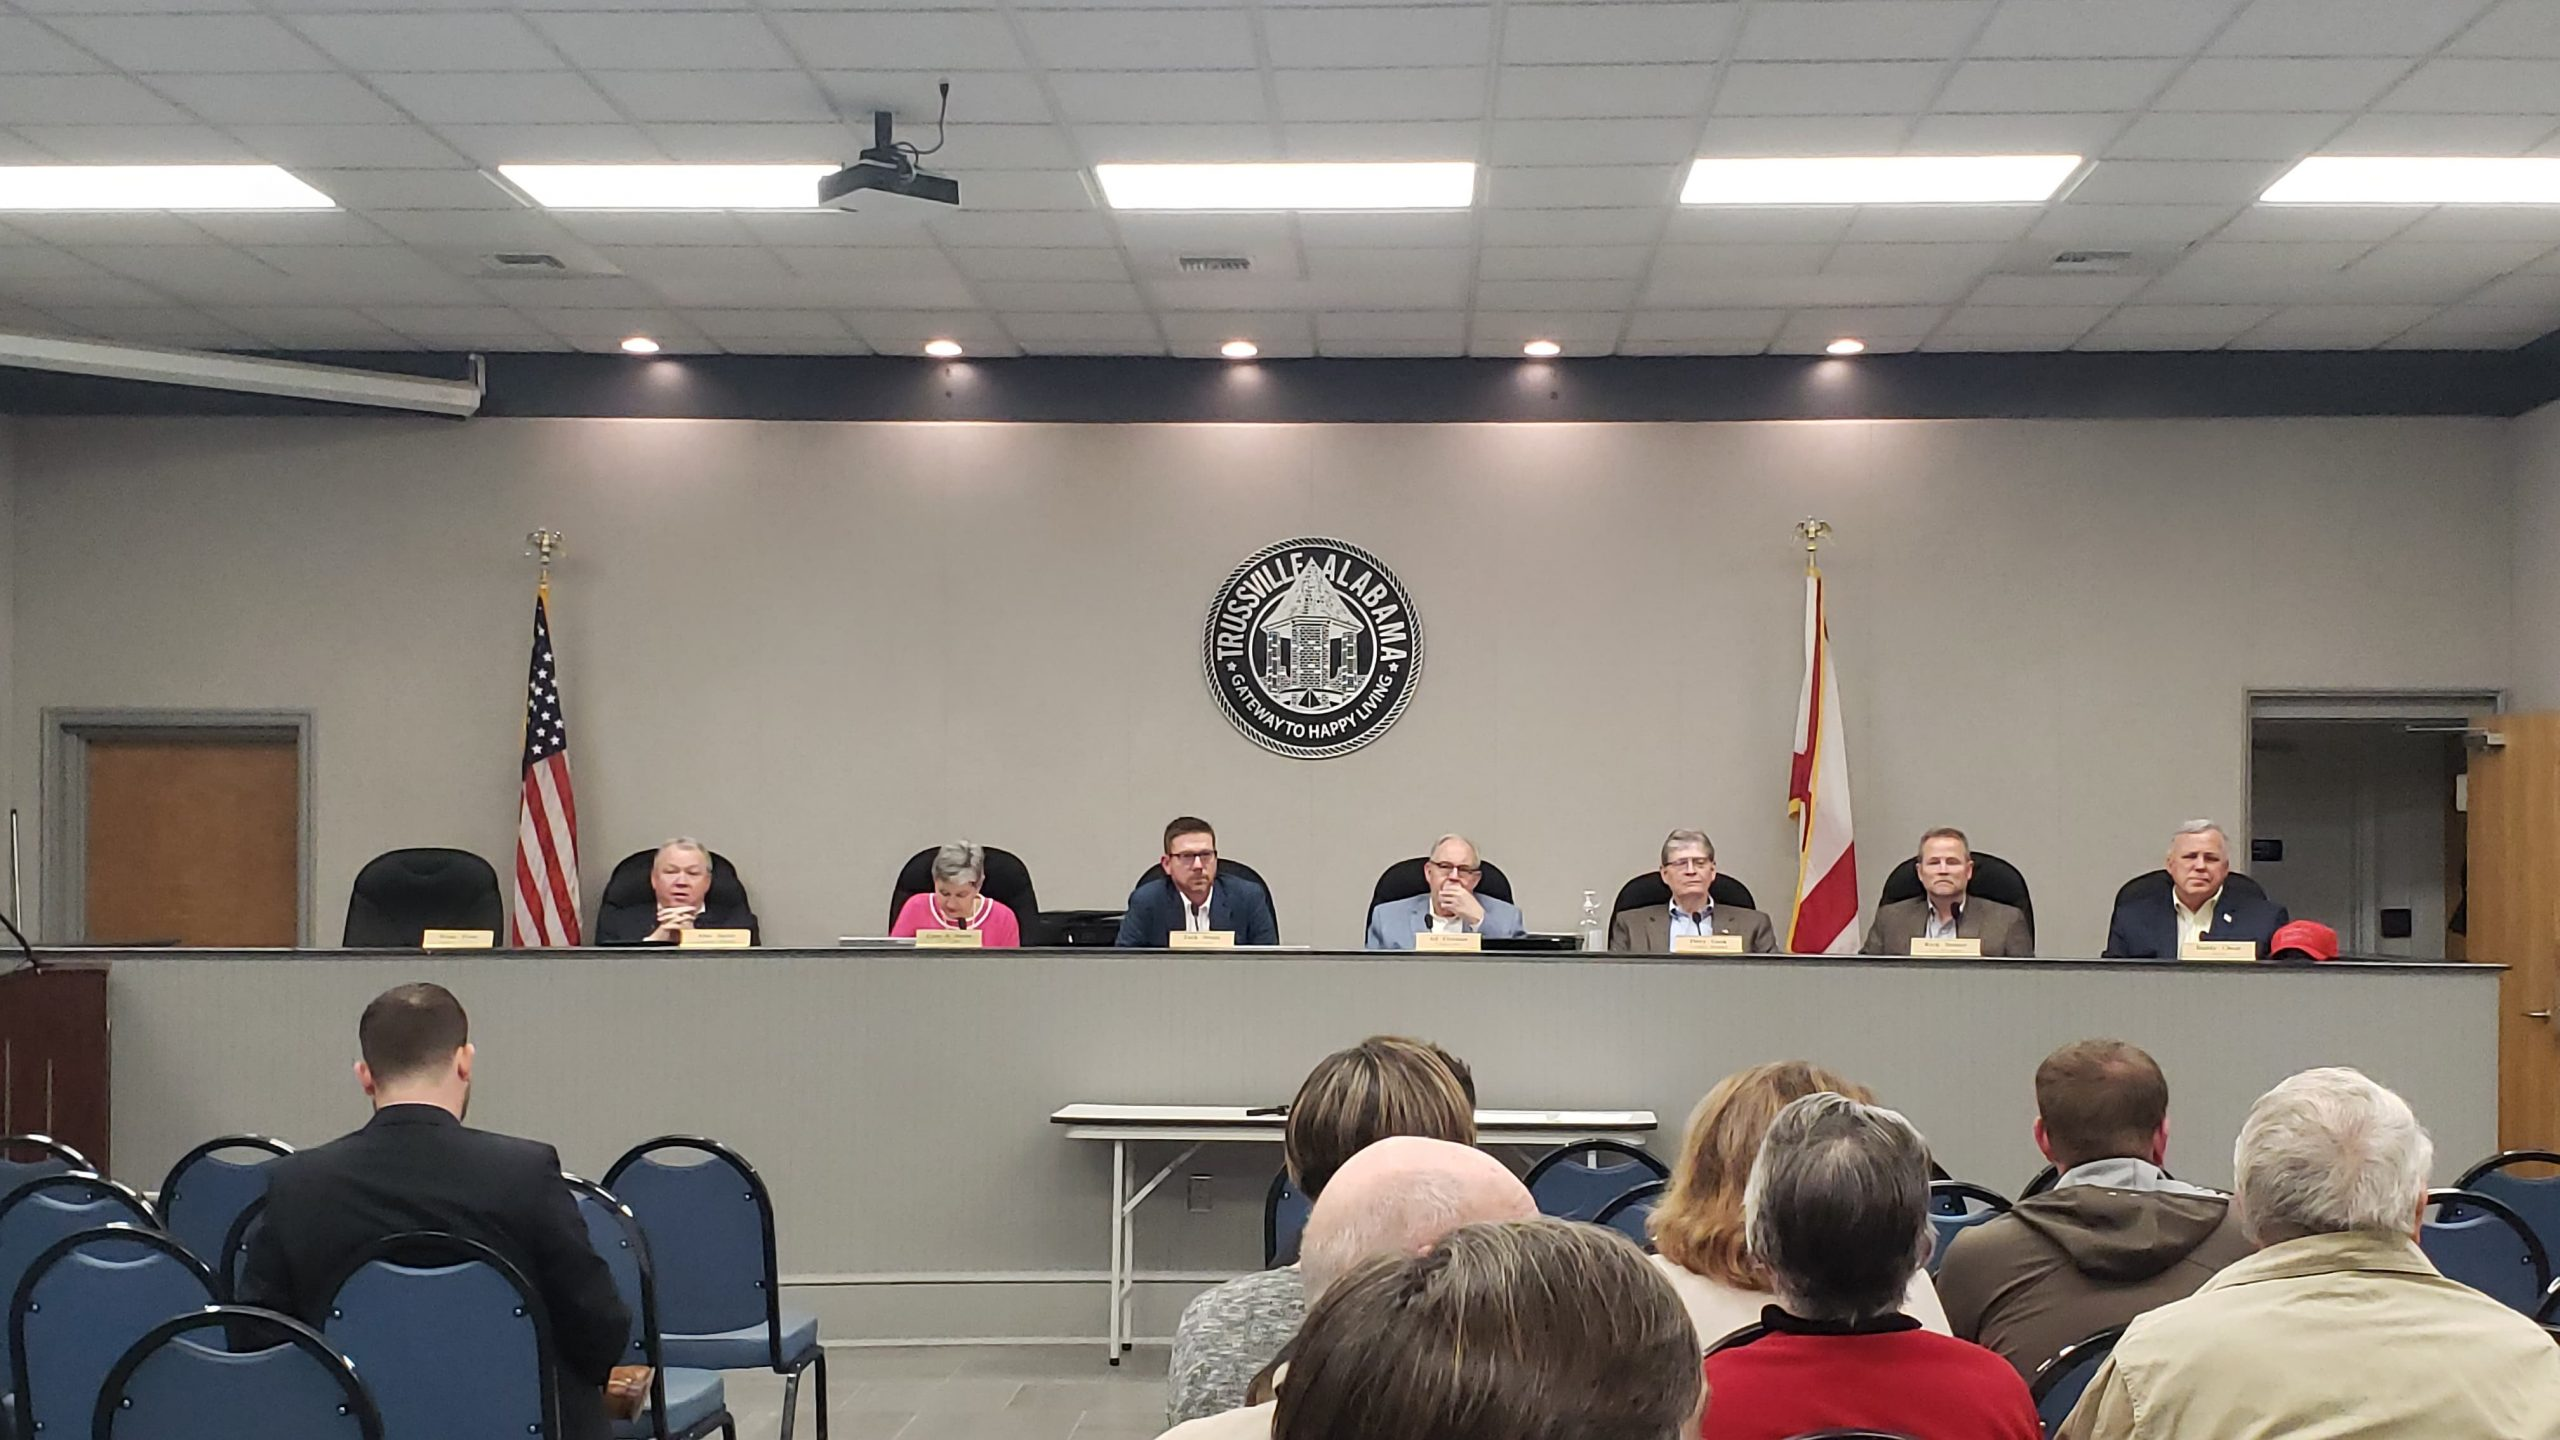 Trussville council begins with moment of silence, council approves making part of downtown street a one-way